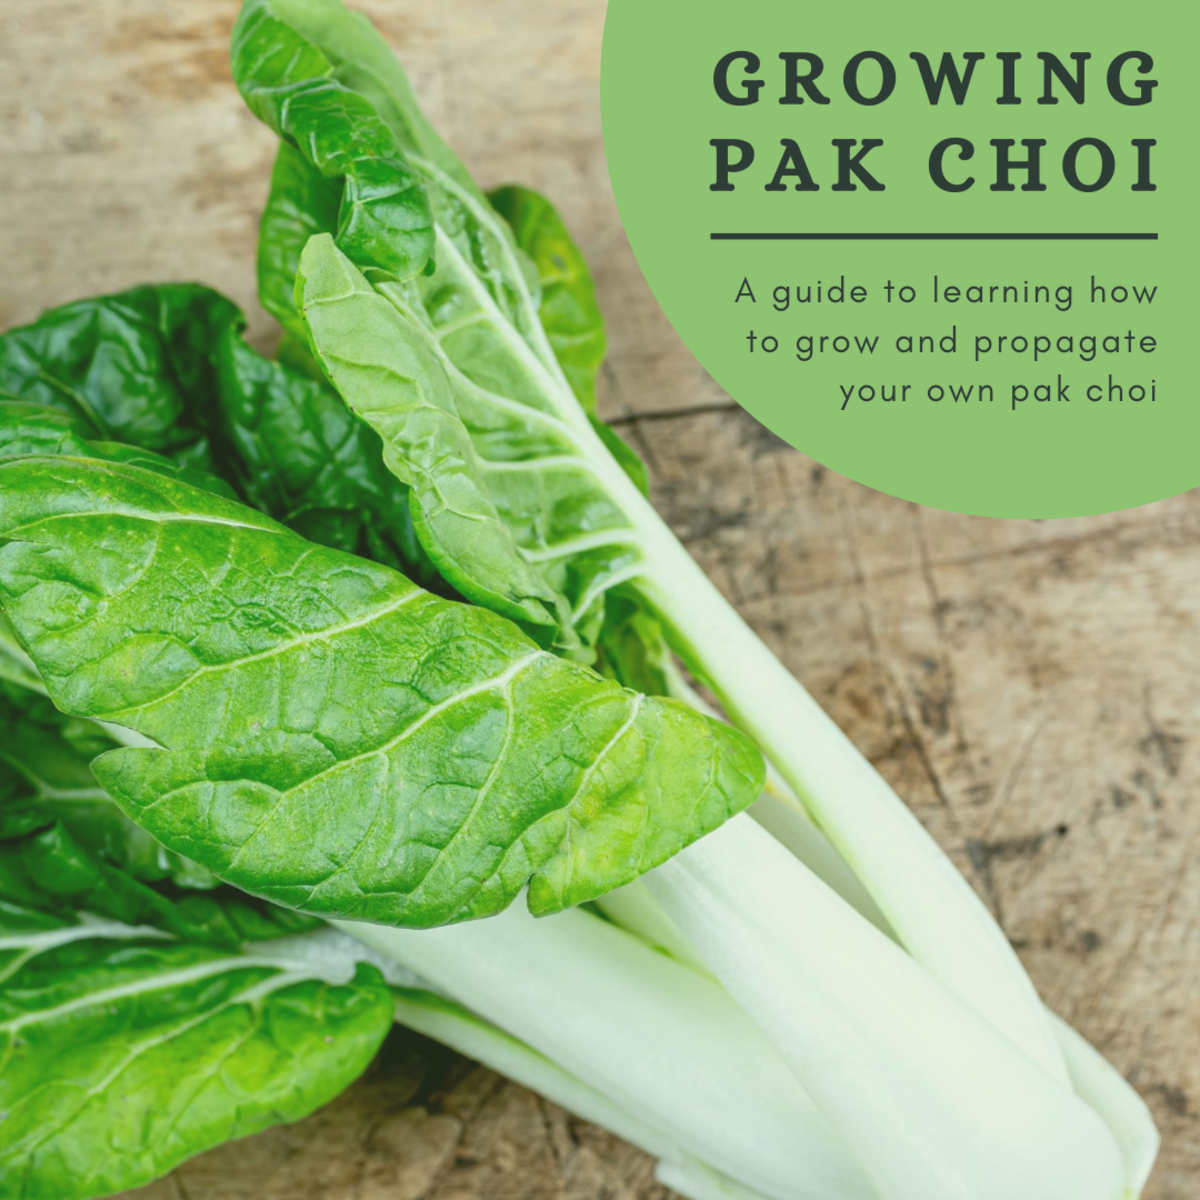 This guide will break down how to grow, harvest, and propagate your own delicious pak choi.